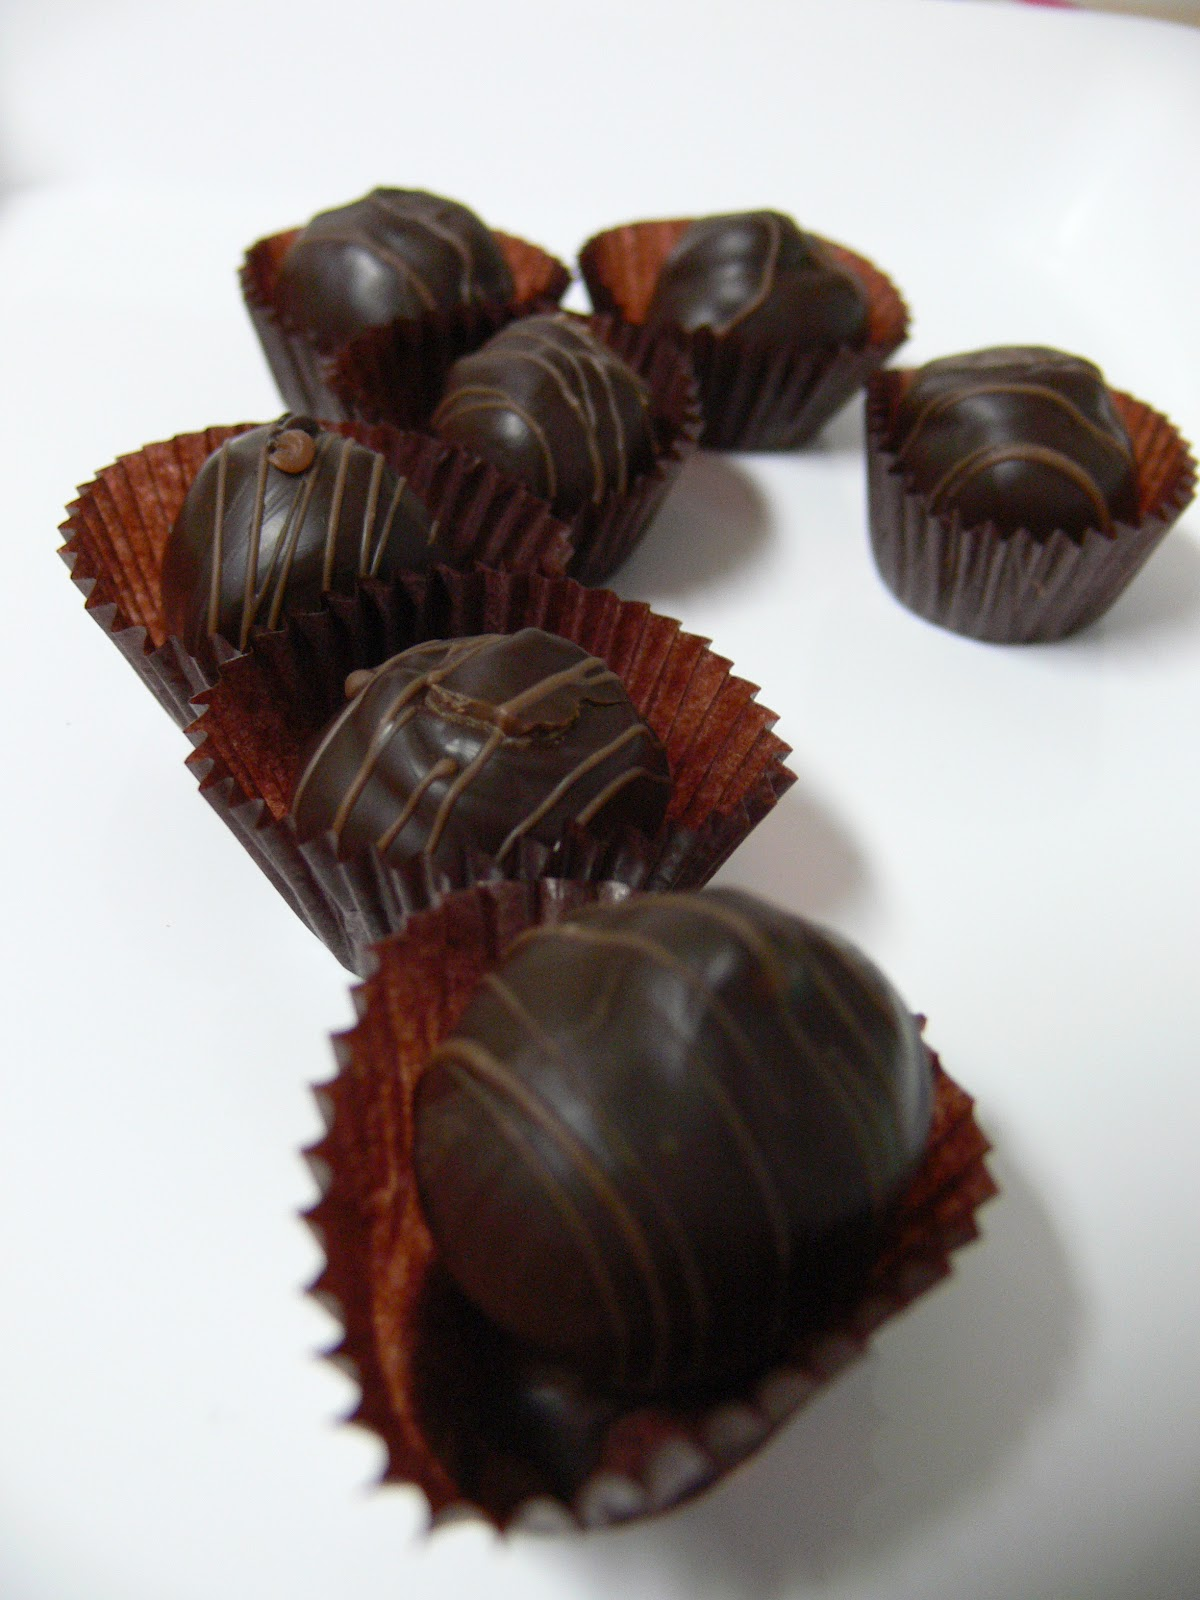 The Ultimate Chocolate Blog: Bittersweet Chocolate Truffle Recipe for ...